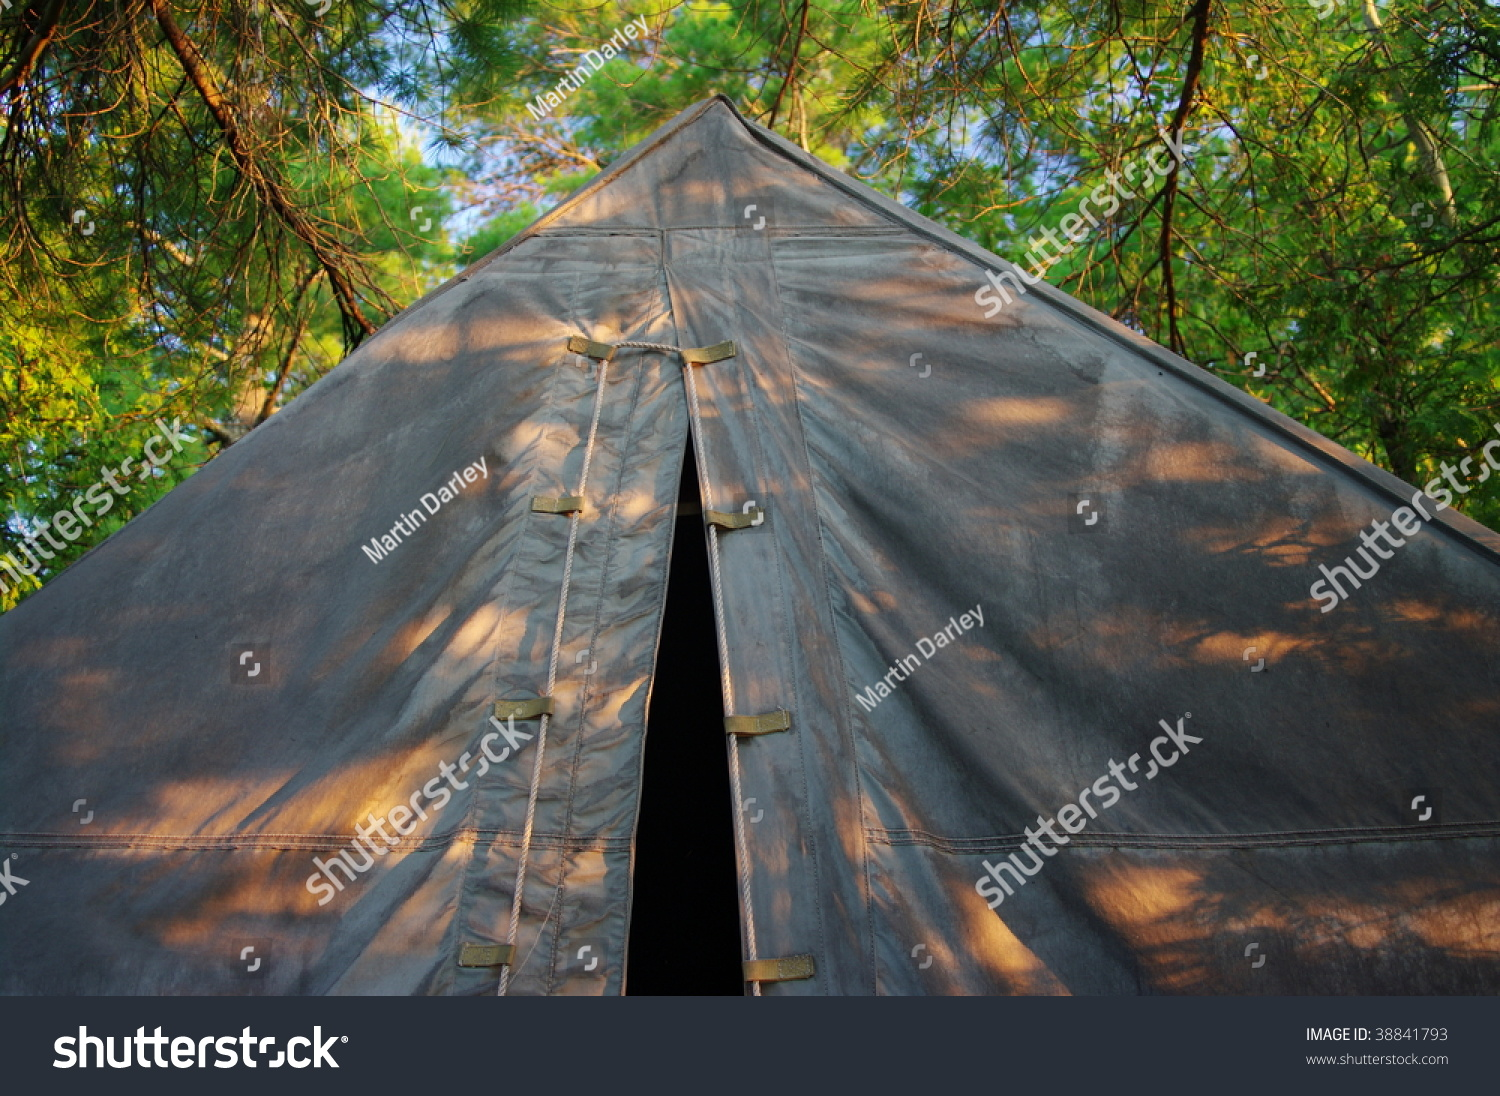 An old canvas tent in the shade of the forest canopy & Old Canvas Tent Shade Forest Canopy Stock Photo (Edit Now) 38841793 ...